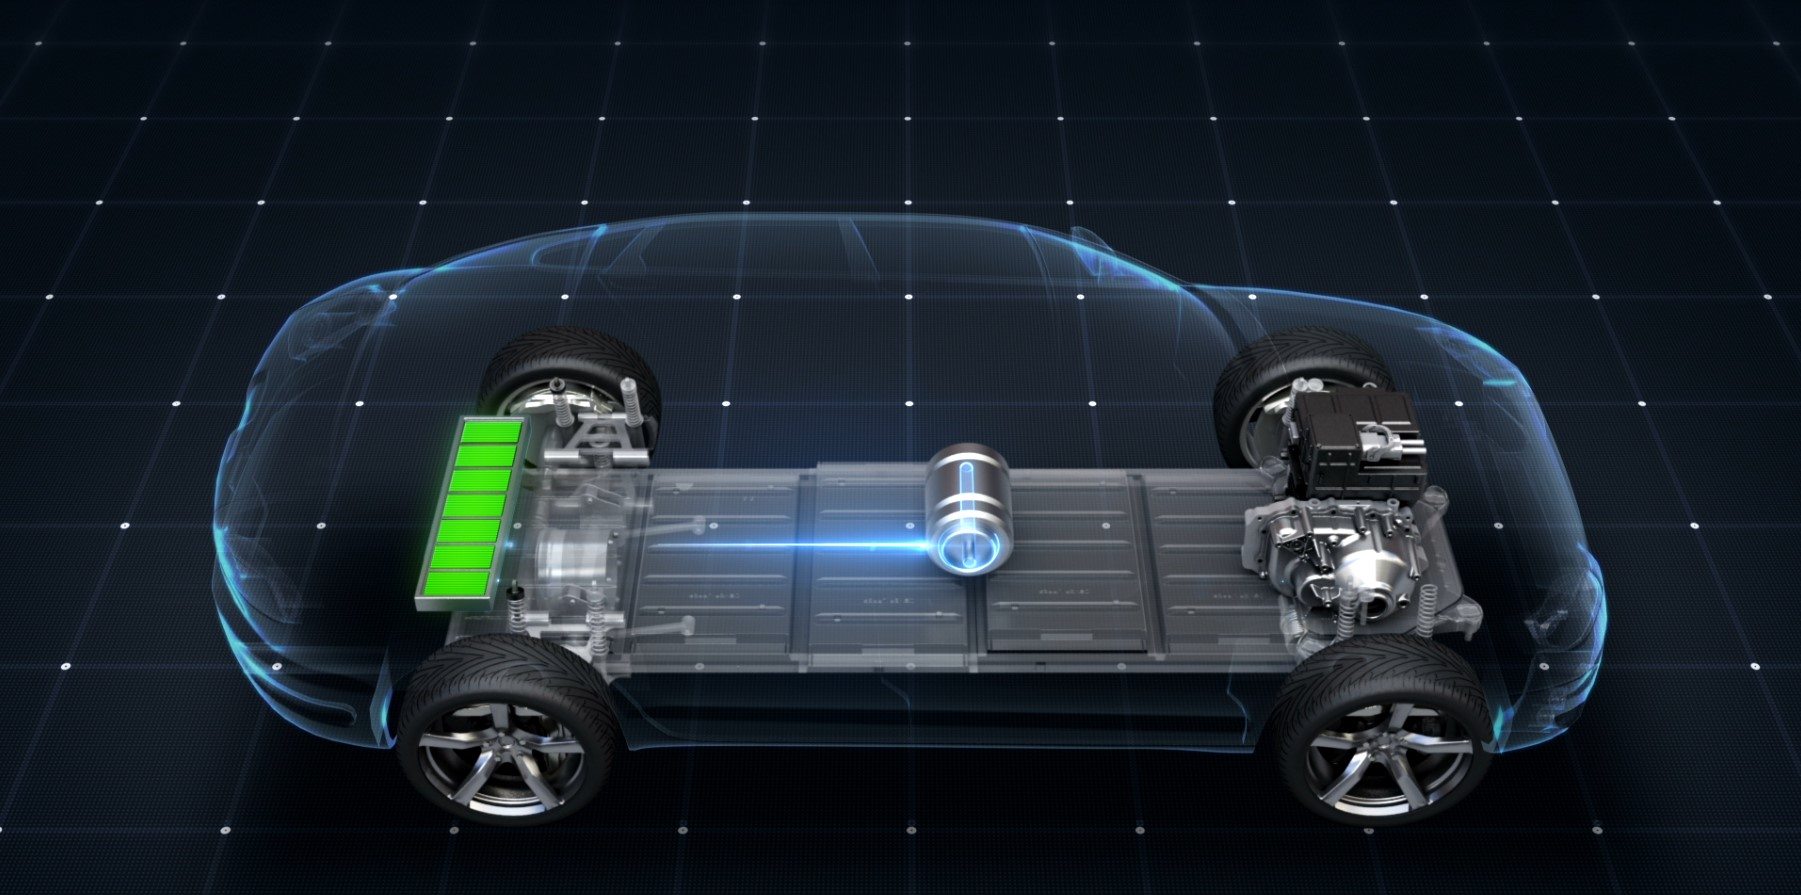 EV battery packs have a significant impact on the value added by UK manufacturers